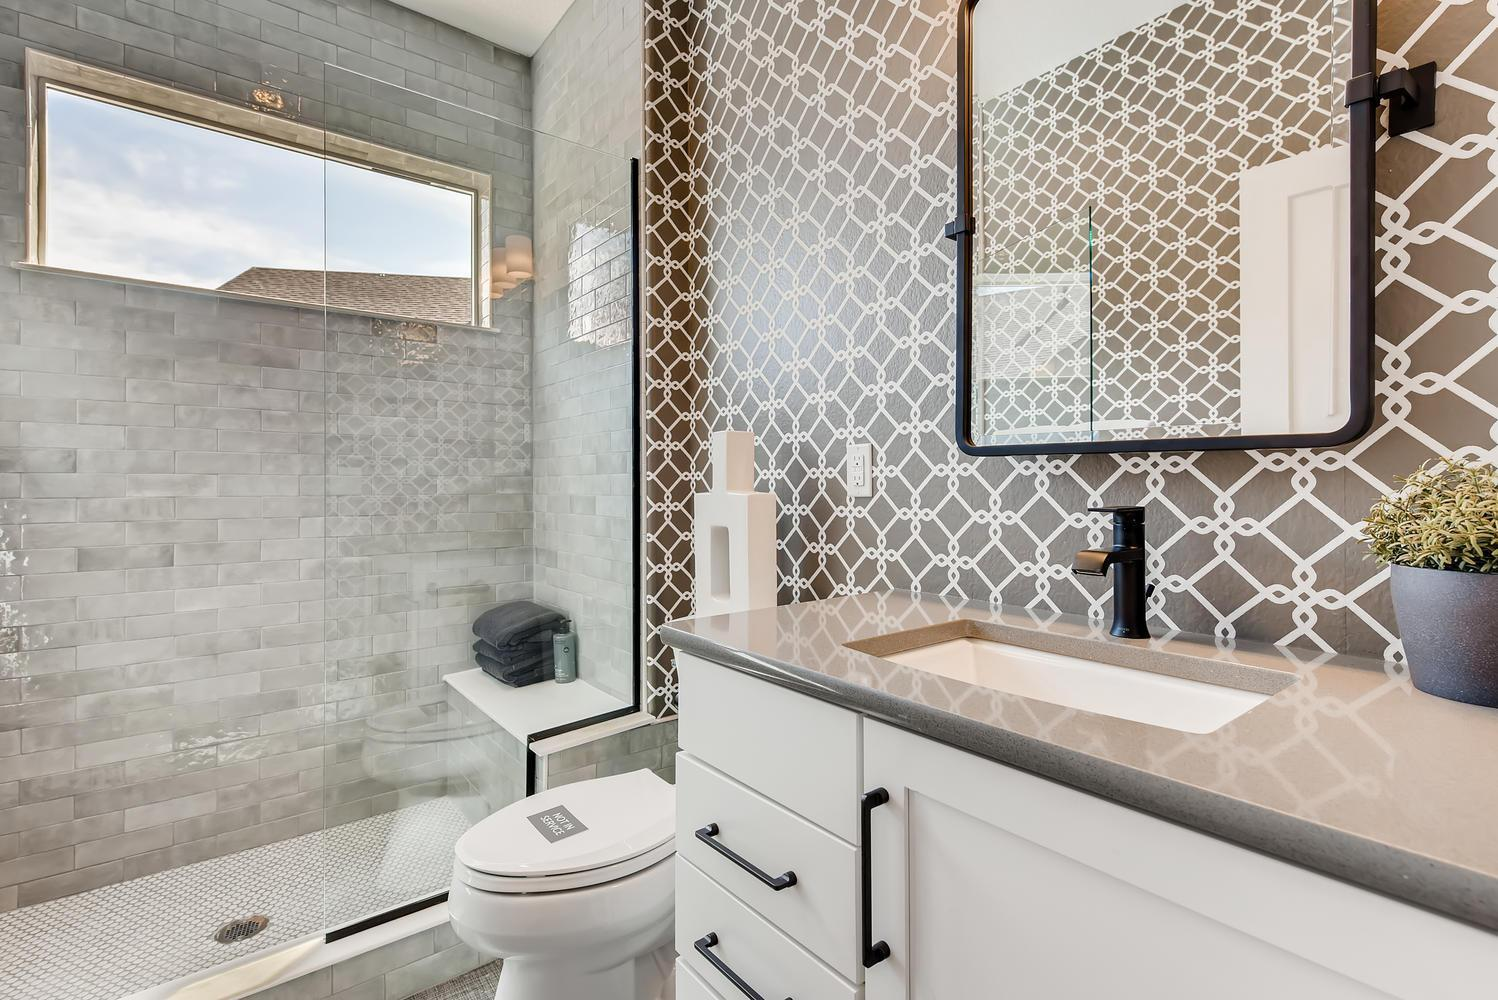 Bathroom featured in the Daylight By Classic Homes in Colorado Springs, CO